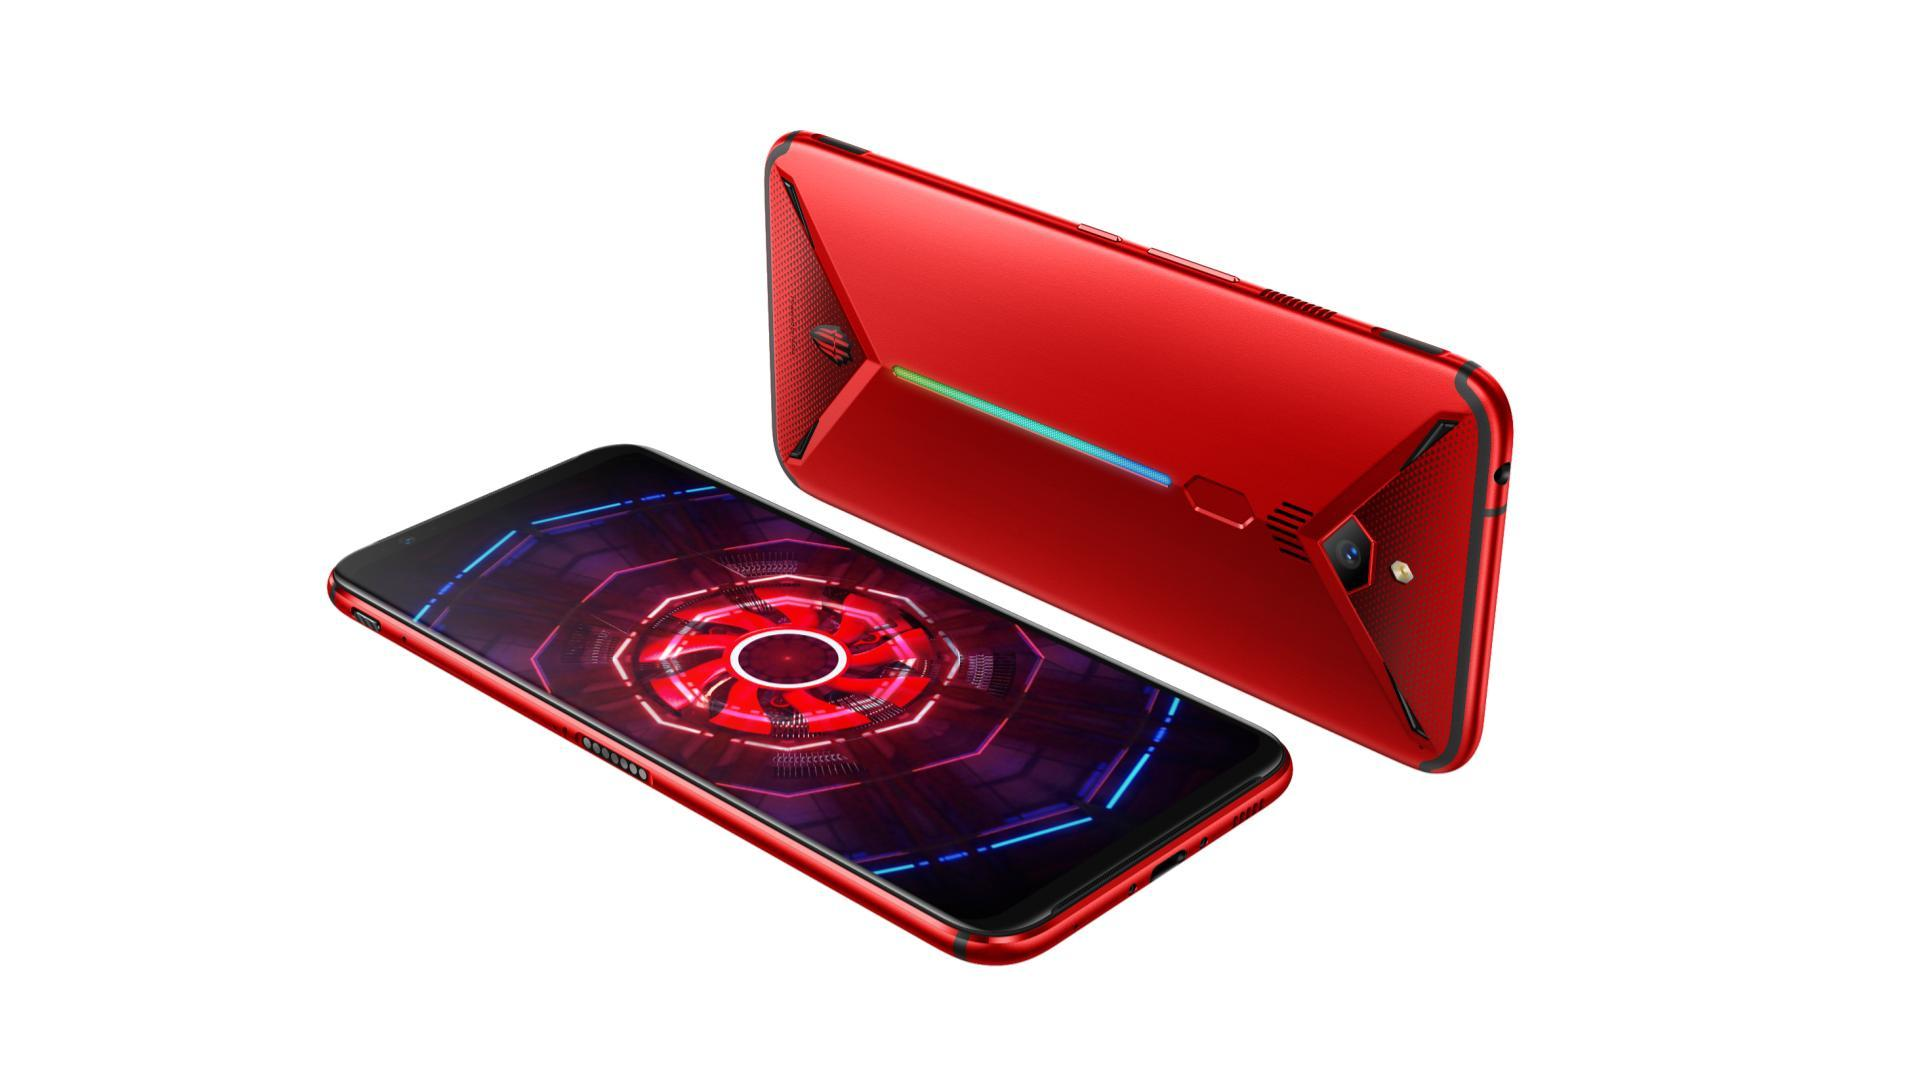 Nubia Red Magic 3 : le smartphone « gaming » mise sur un écran AMOLED 90 Hz et du Snapdragon 855